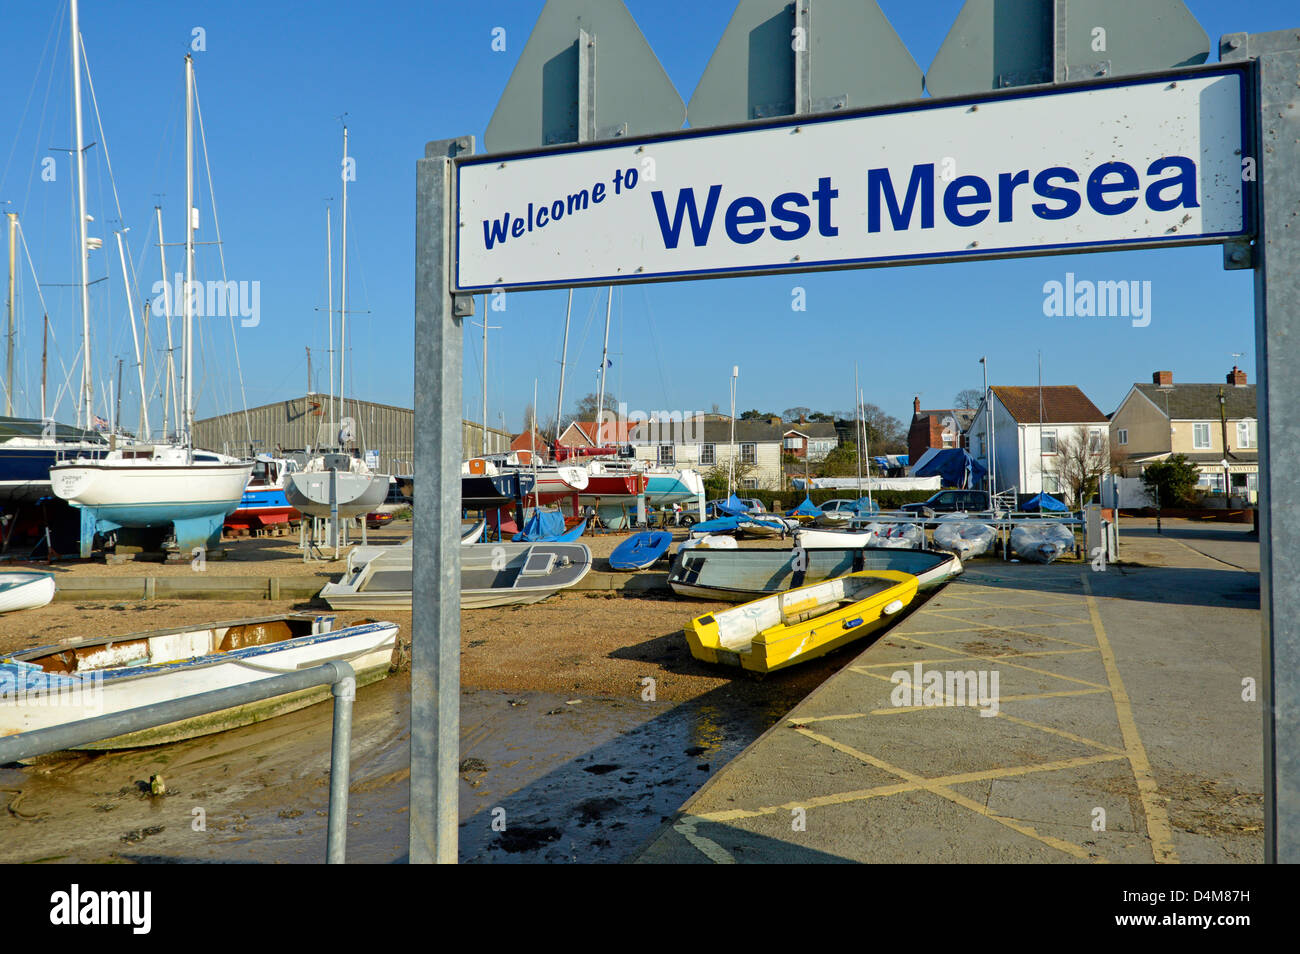 Welcoming sign to West Mersea for boat users arriving onto pontoon and going ashore - Stock Image